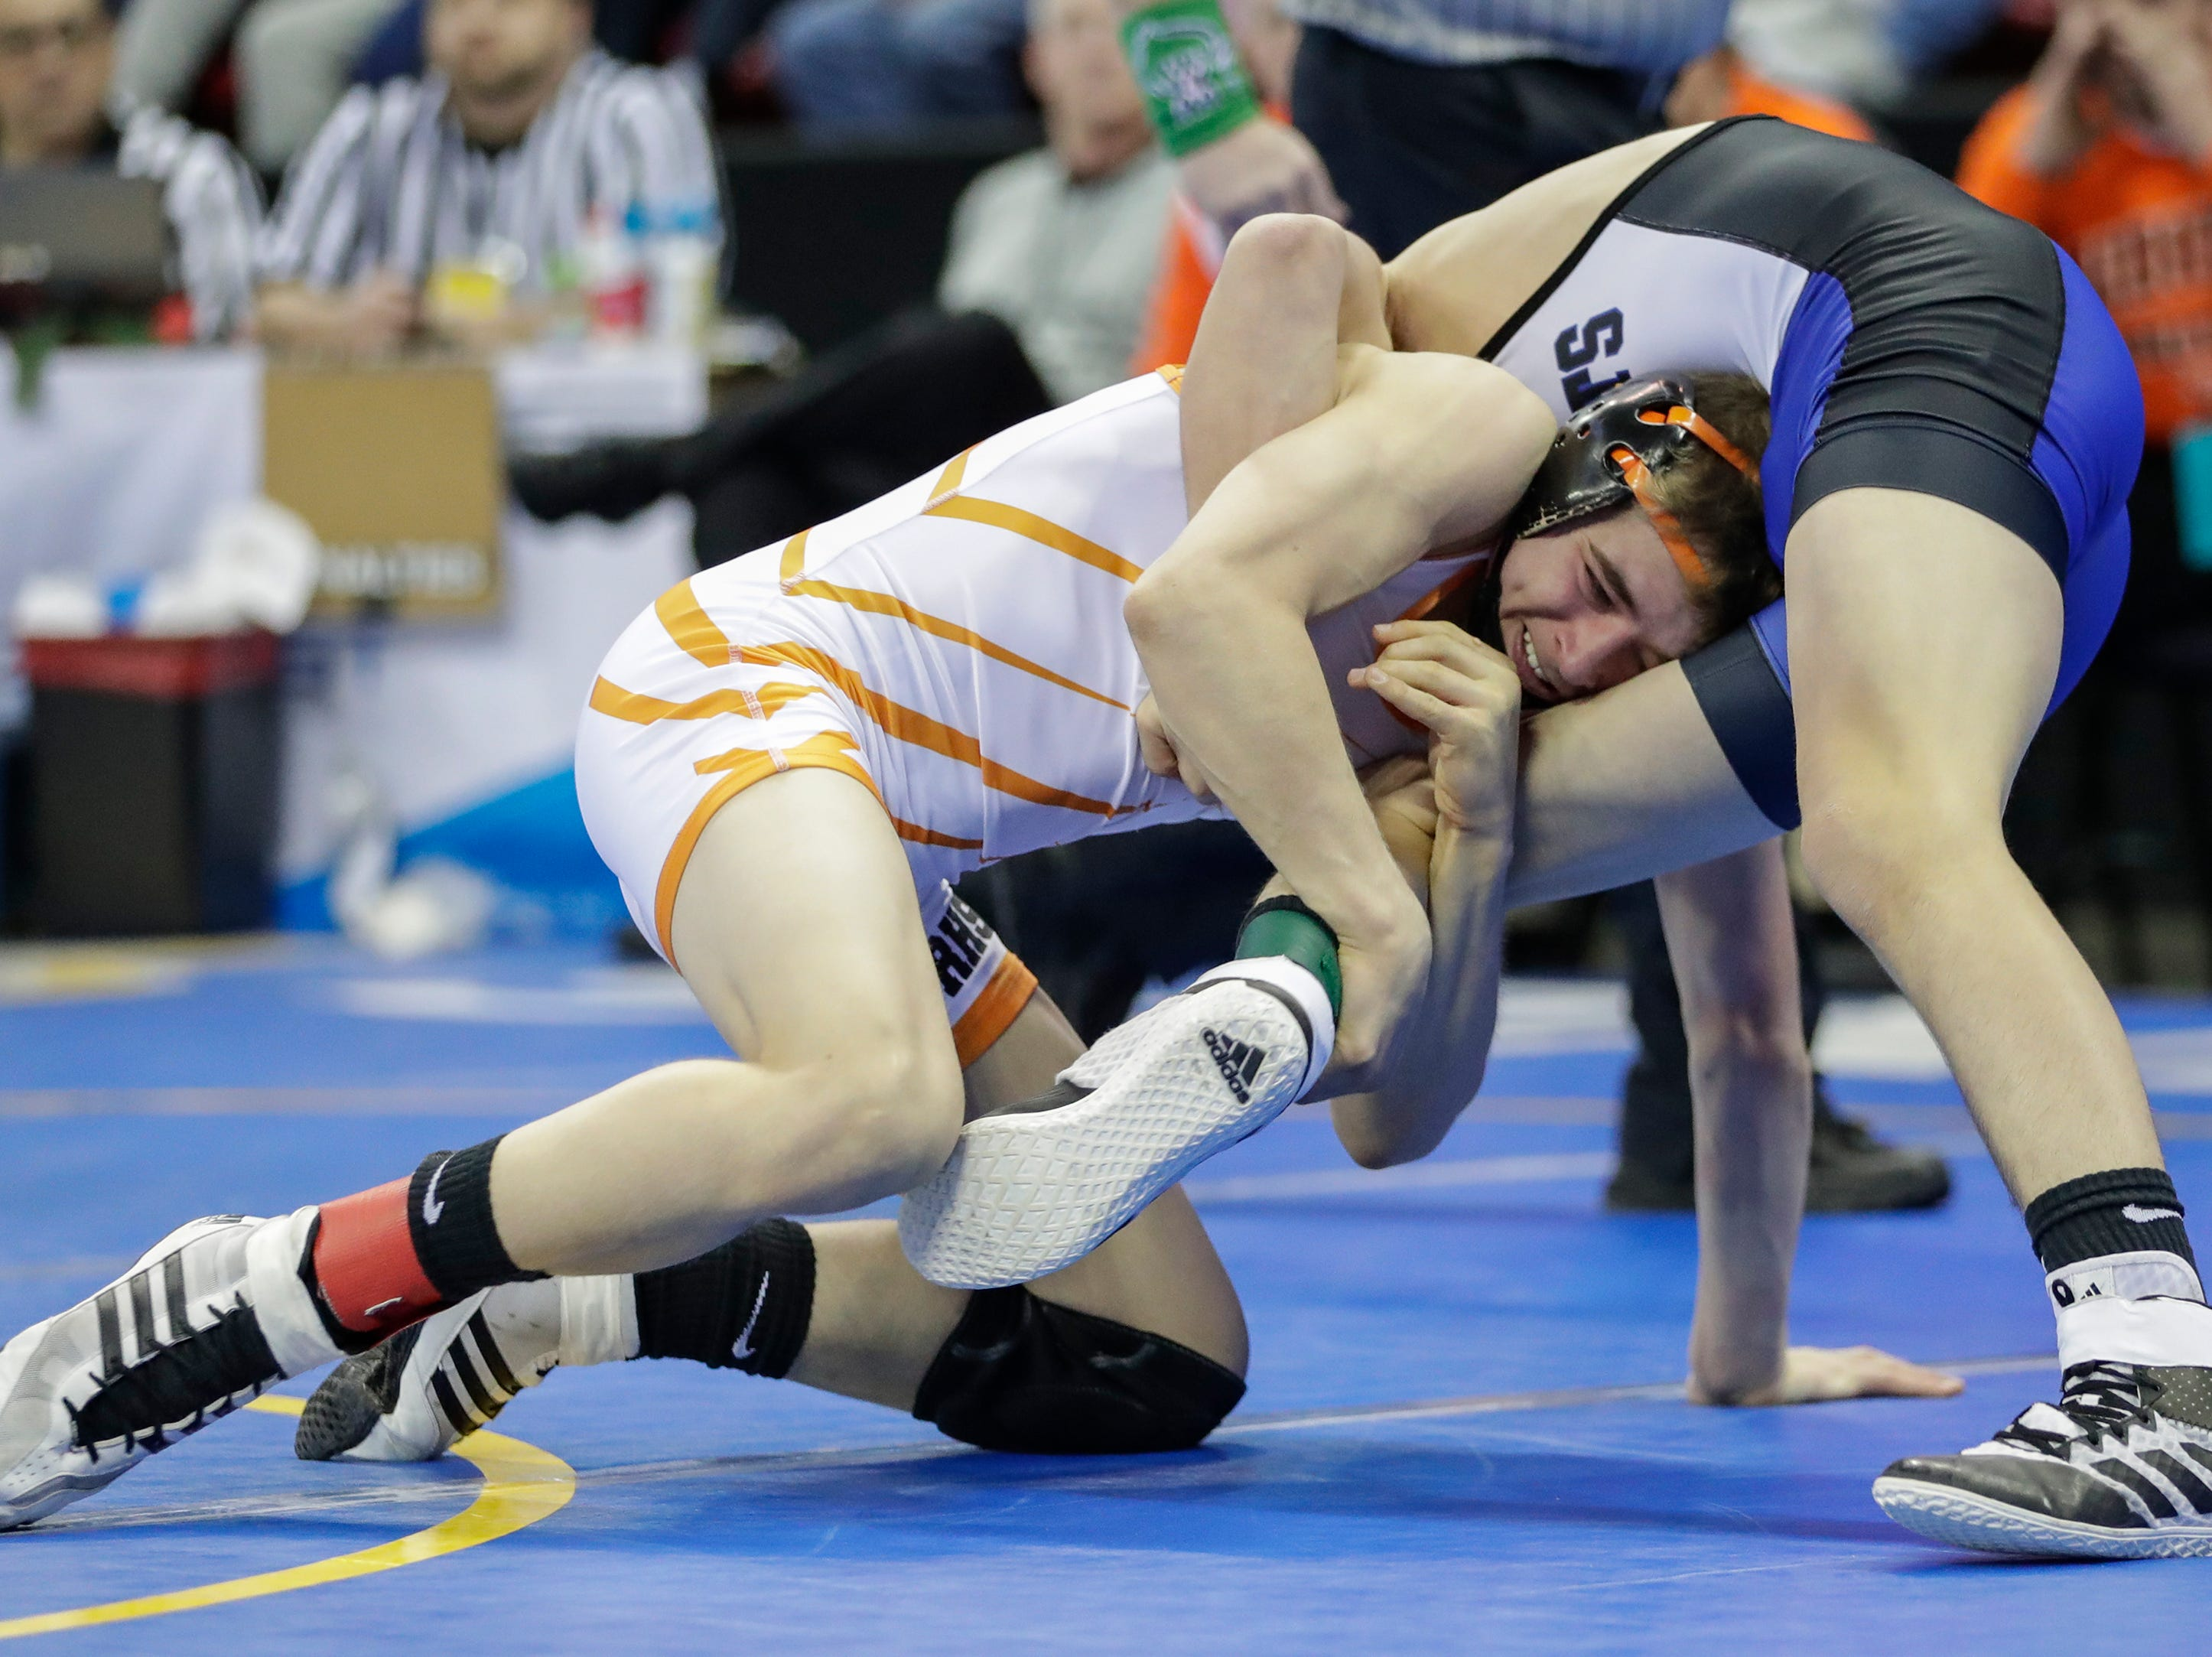 Reedsville's Caleb Delsman wrestles Saint Croix Falls' Mason Will in a Division 3 113-pound weight class preliminary match during the WIAA state individual wrestling tournament at the Kohl Center Thursday, February 21, 2019, in Madison, Wis.